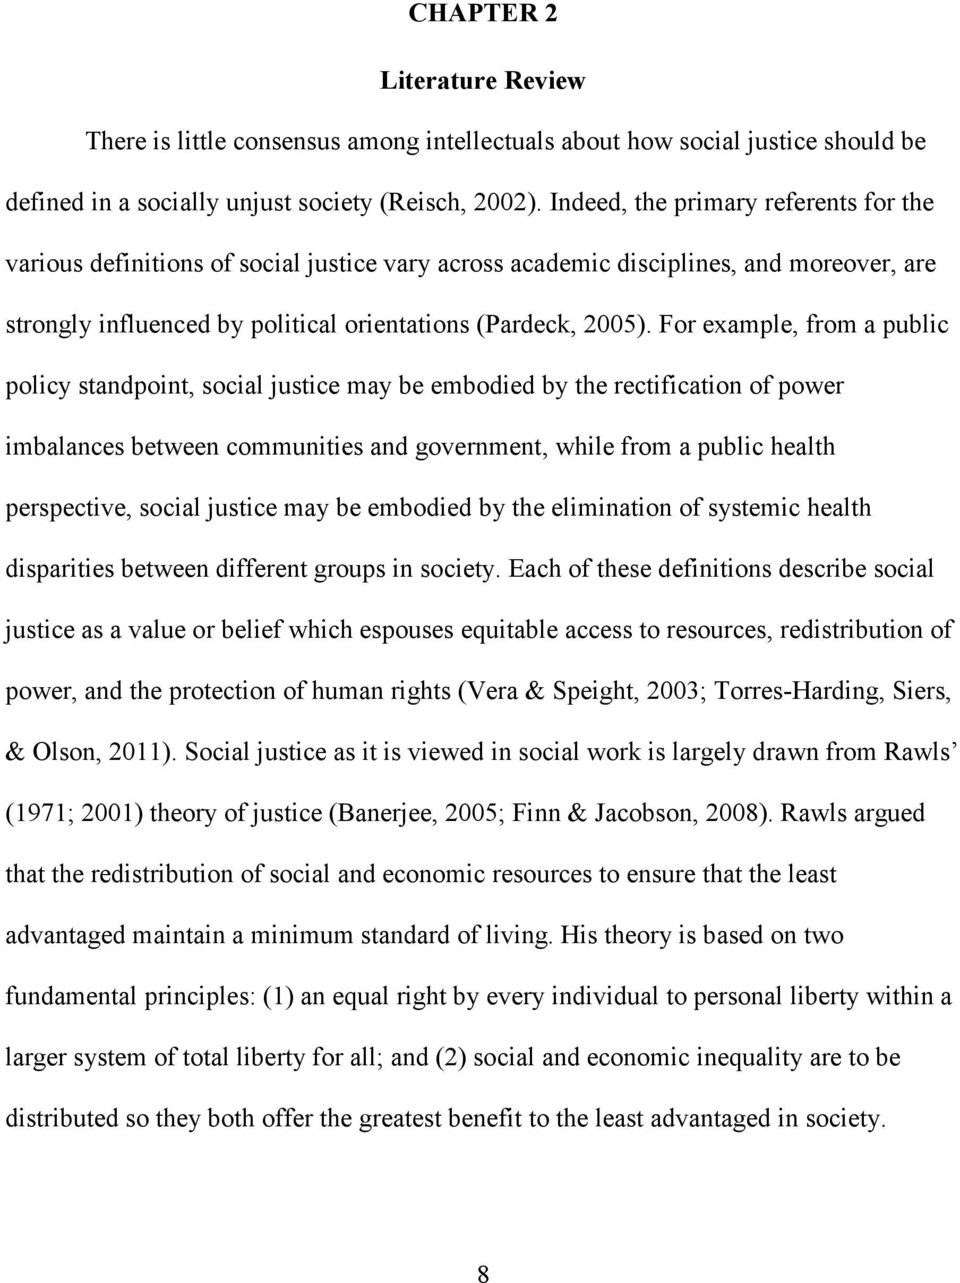 For example, from a public policy standpoint, social justice may be embodied by the rectification of power imbalances between communities and government, while from a public health perspective,